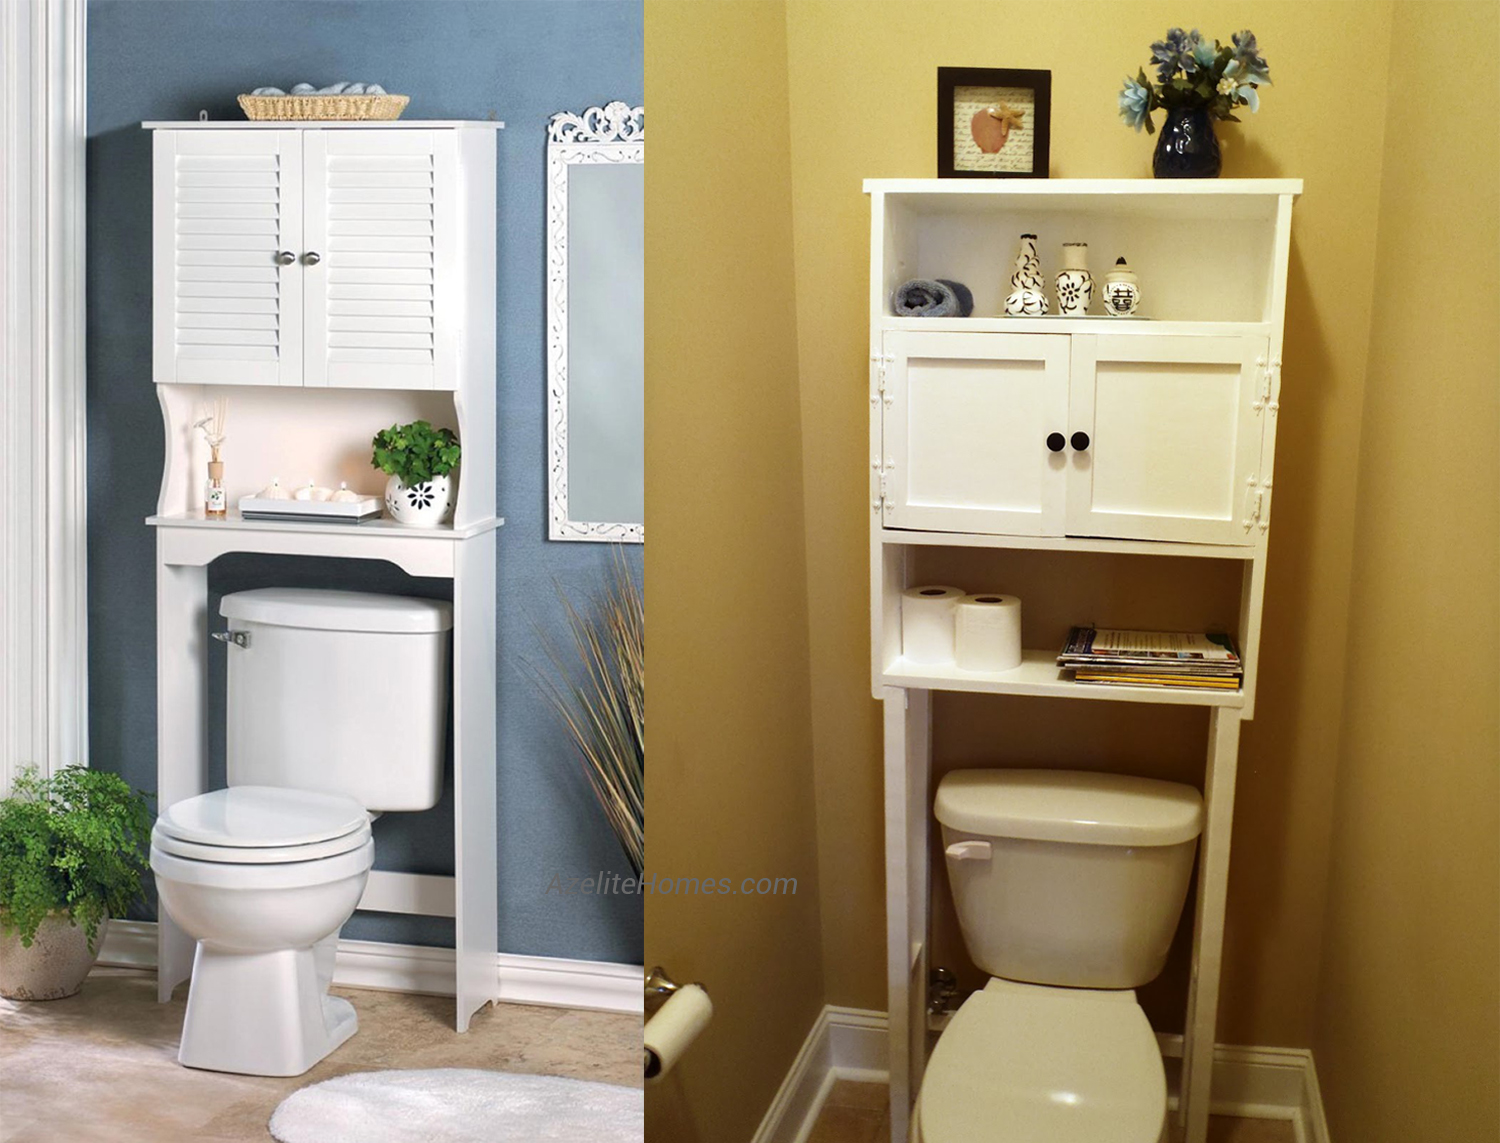 Shortage Remedy – Bathroom Organizers